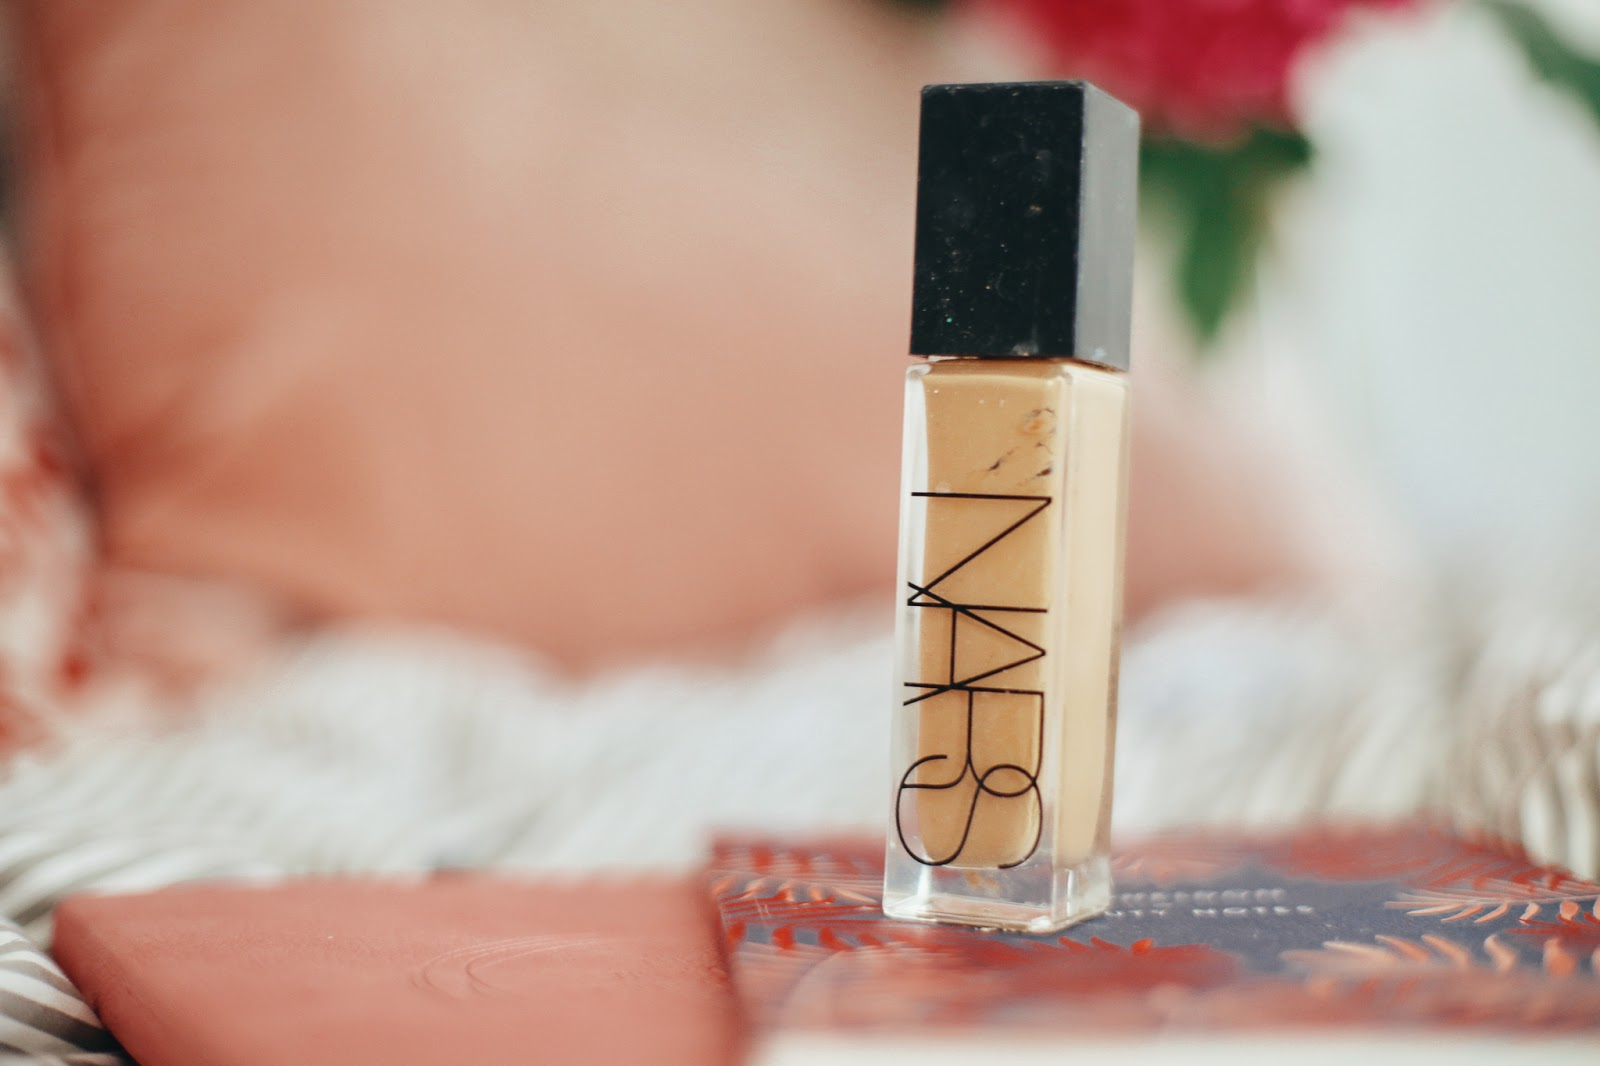 nars luminous foundation